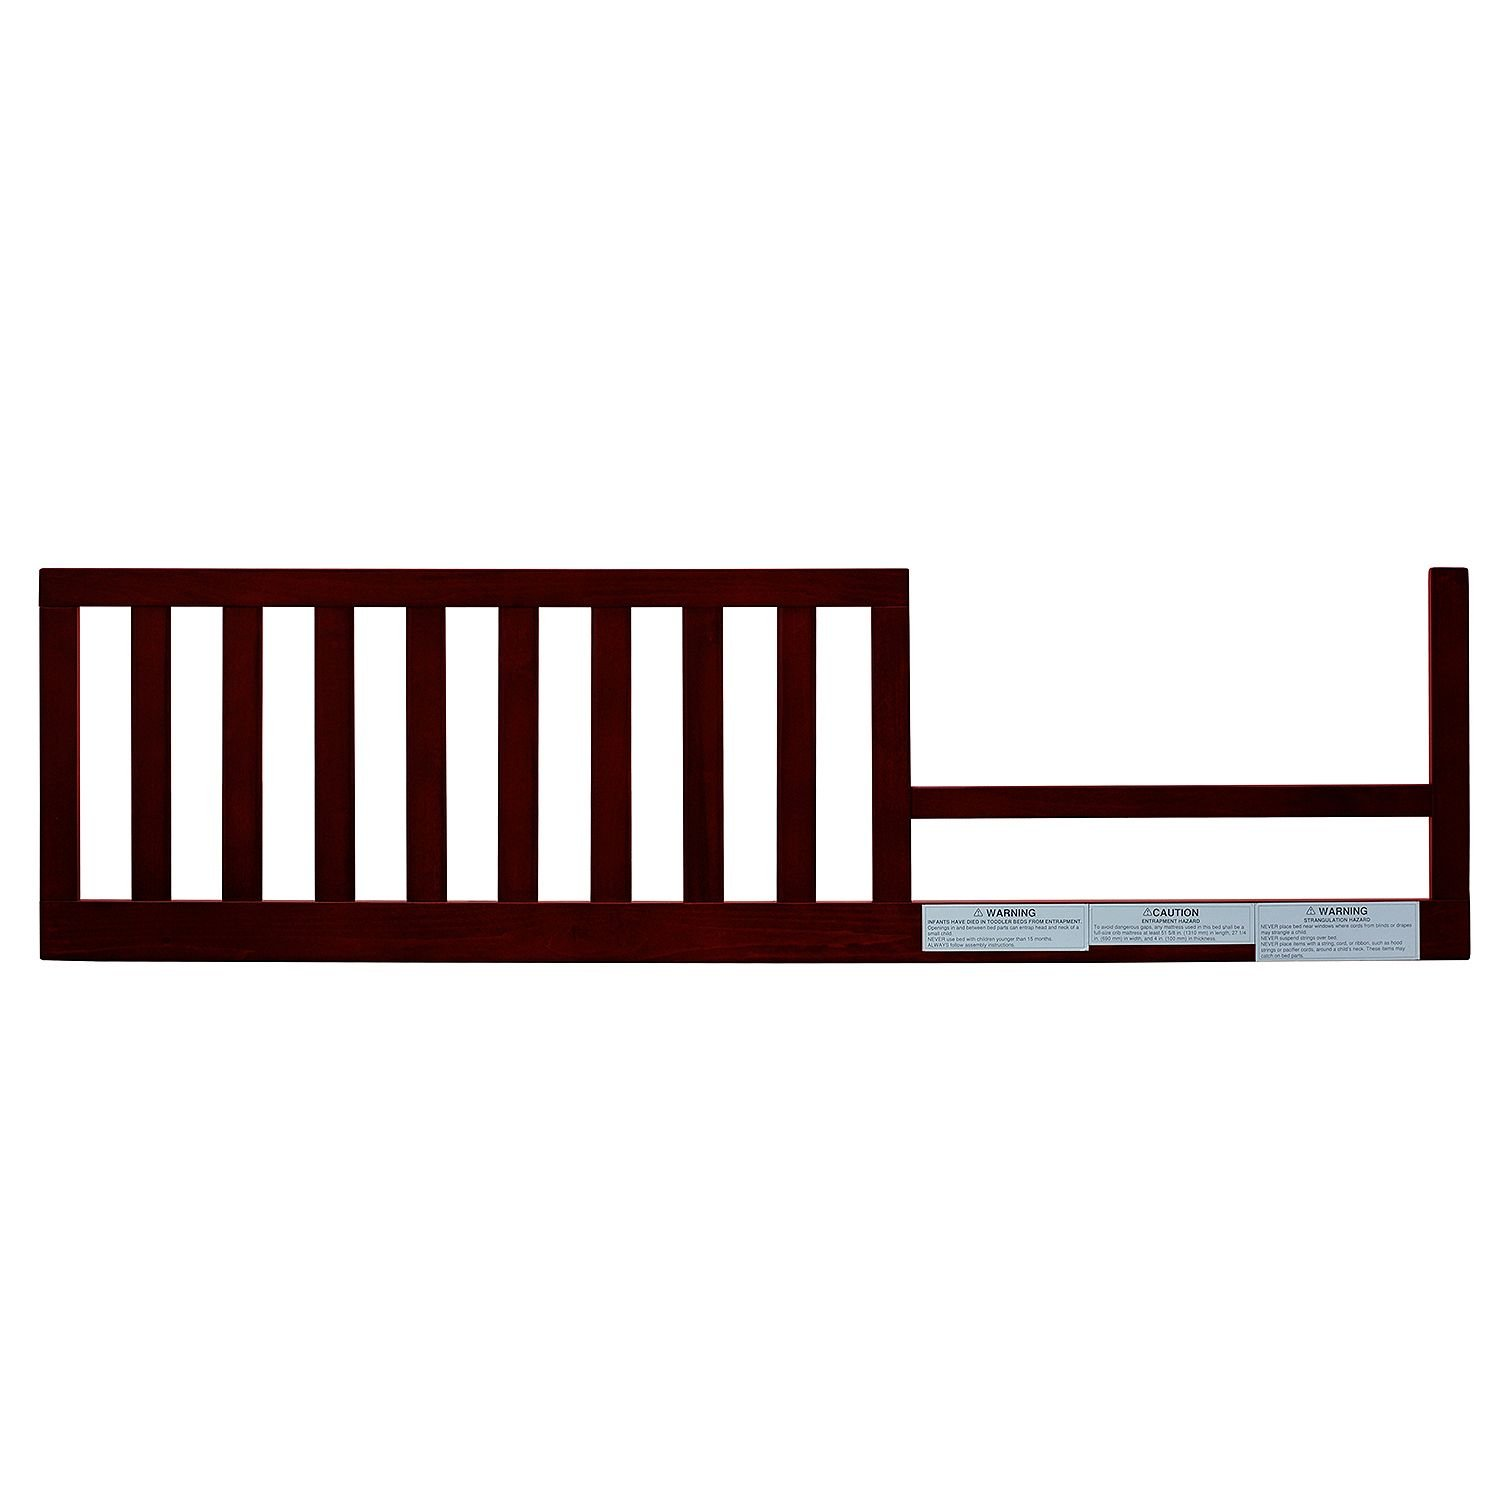 AFG Lia Convertible Crib Toddler Guardrail, Cherry, Lead and phthalate safe 100% sustainable New Zealand pine wood. - (Original from manufacturer - Bulk Discount available)